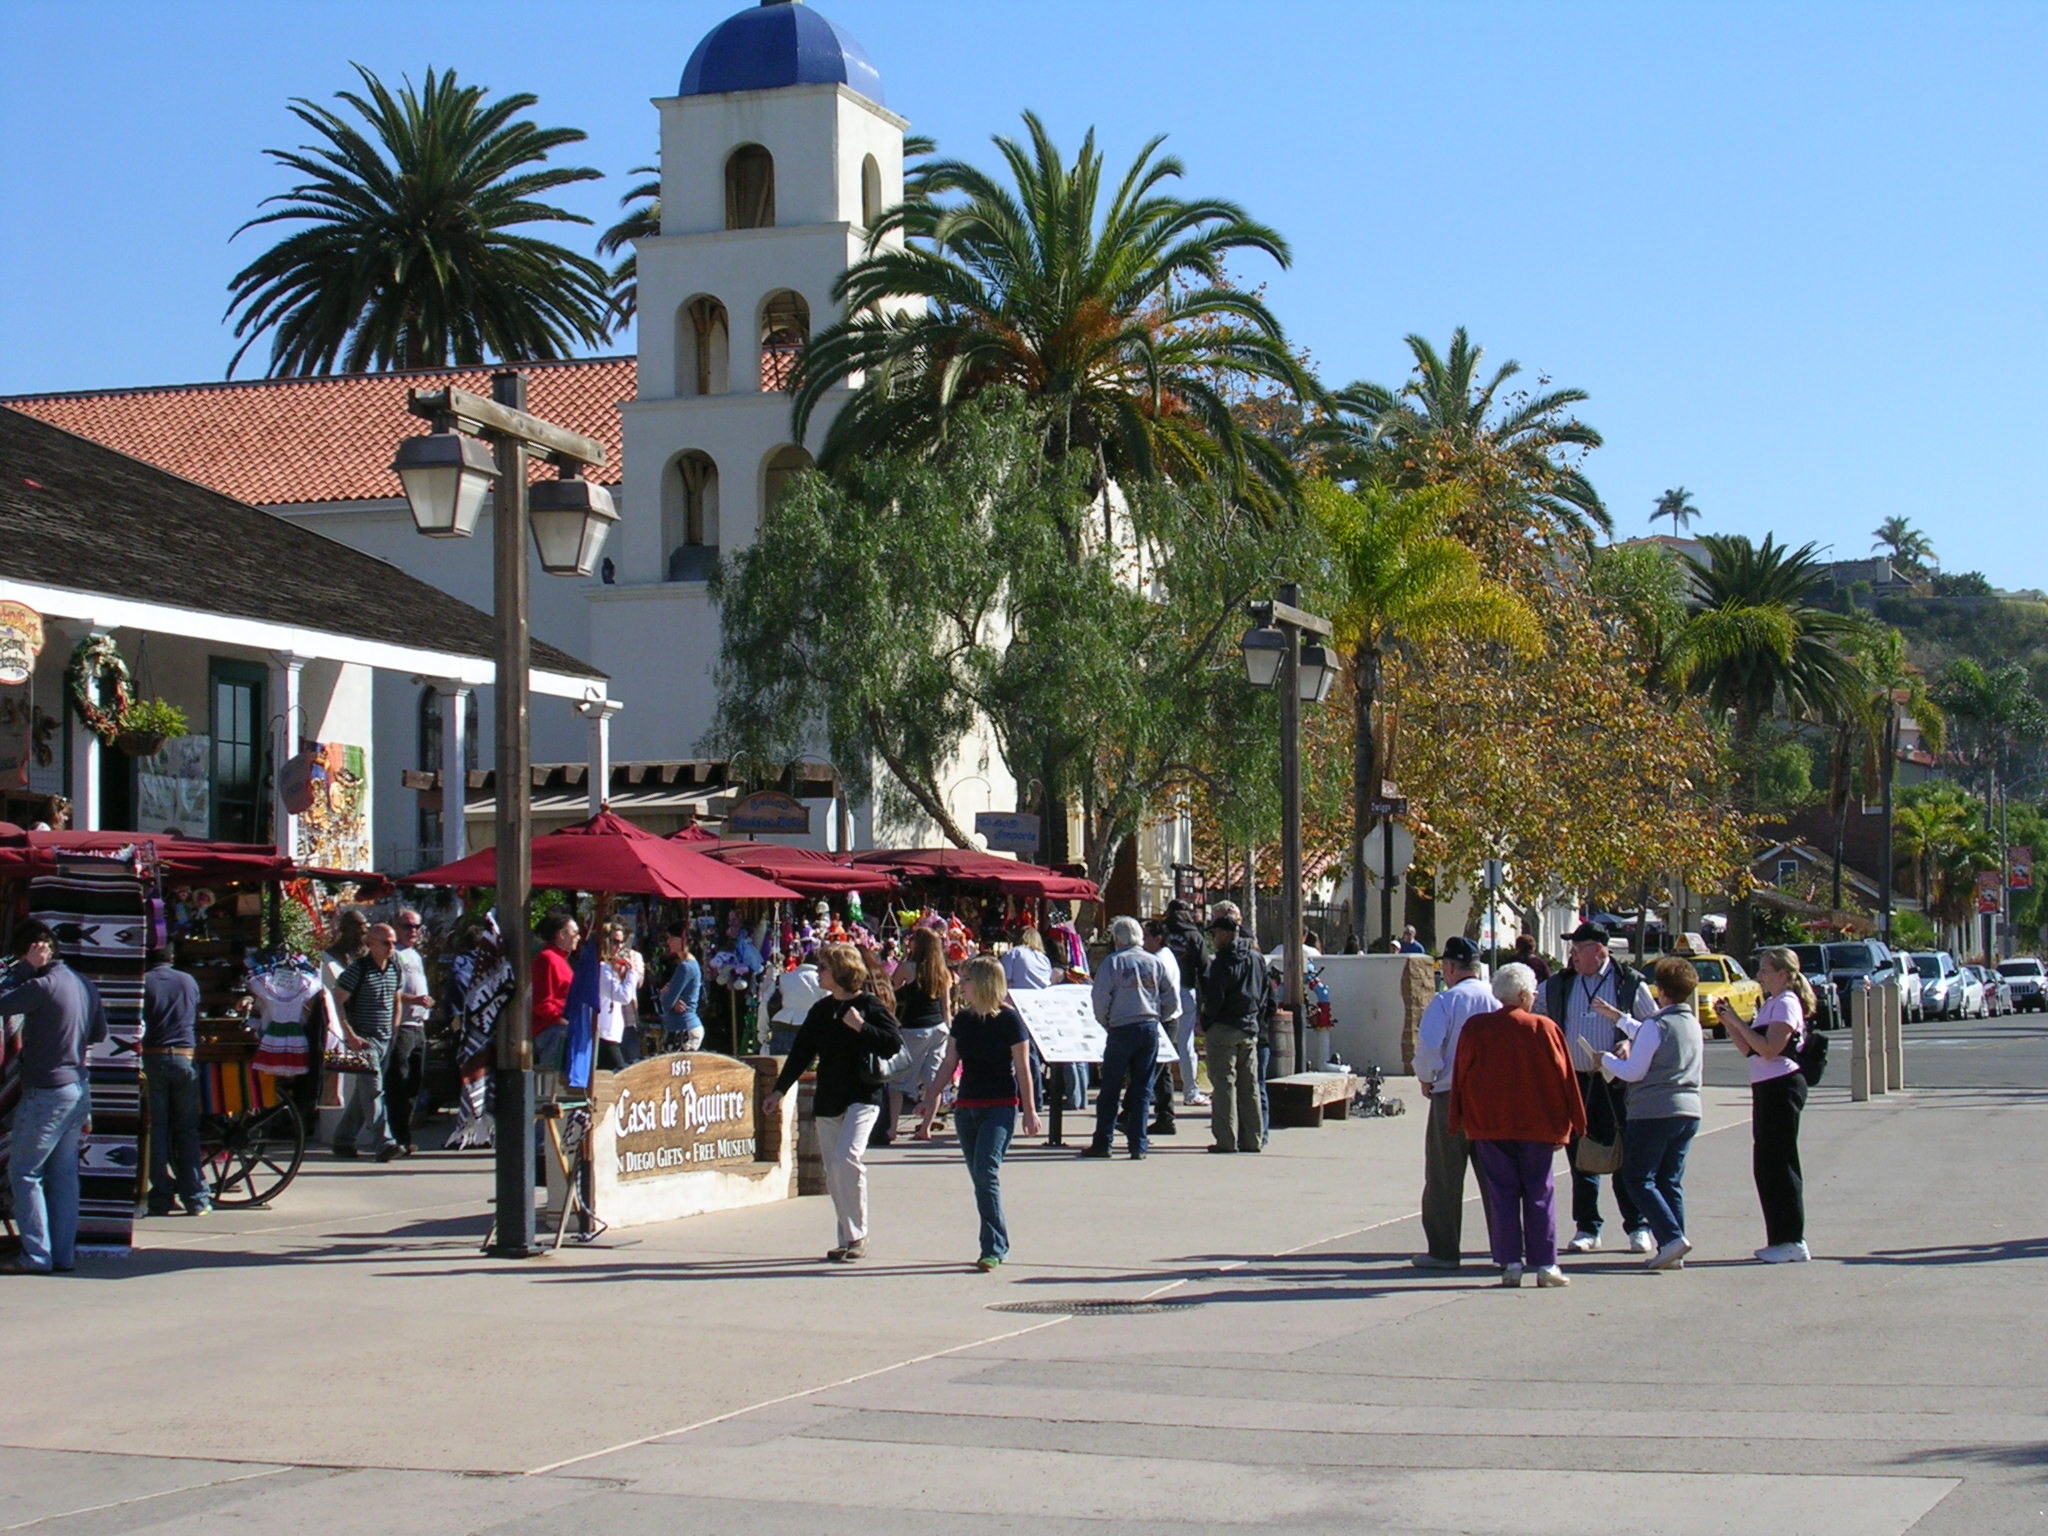 View of the plaza